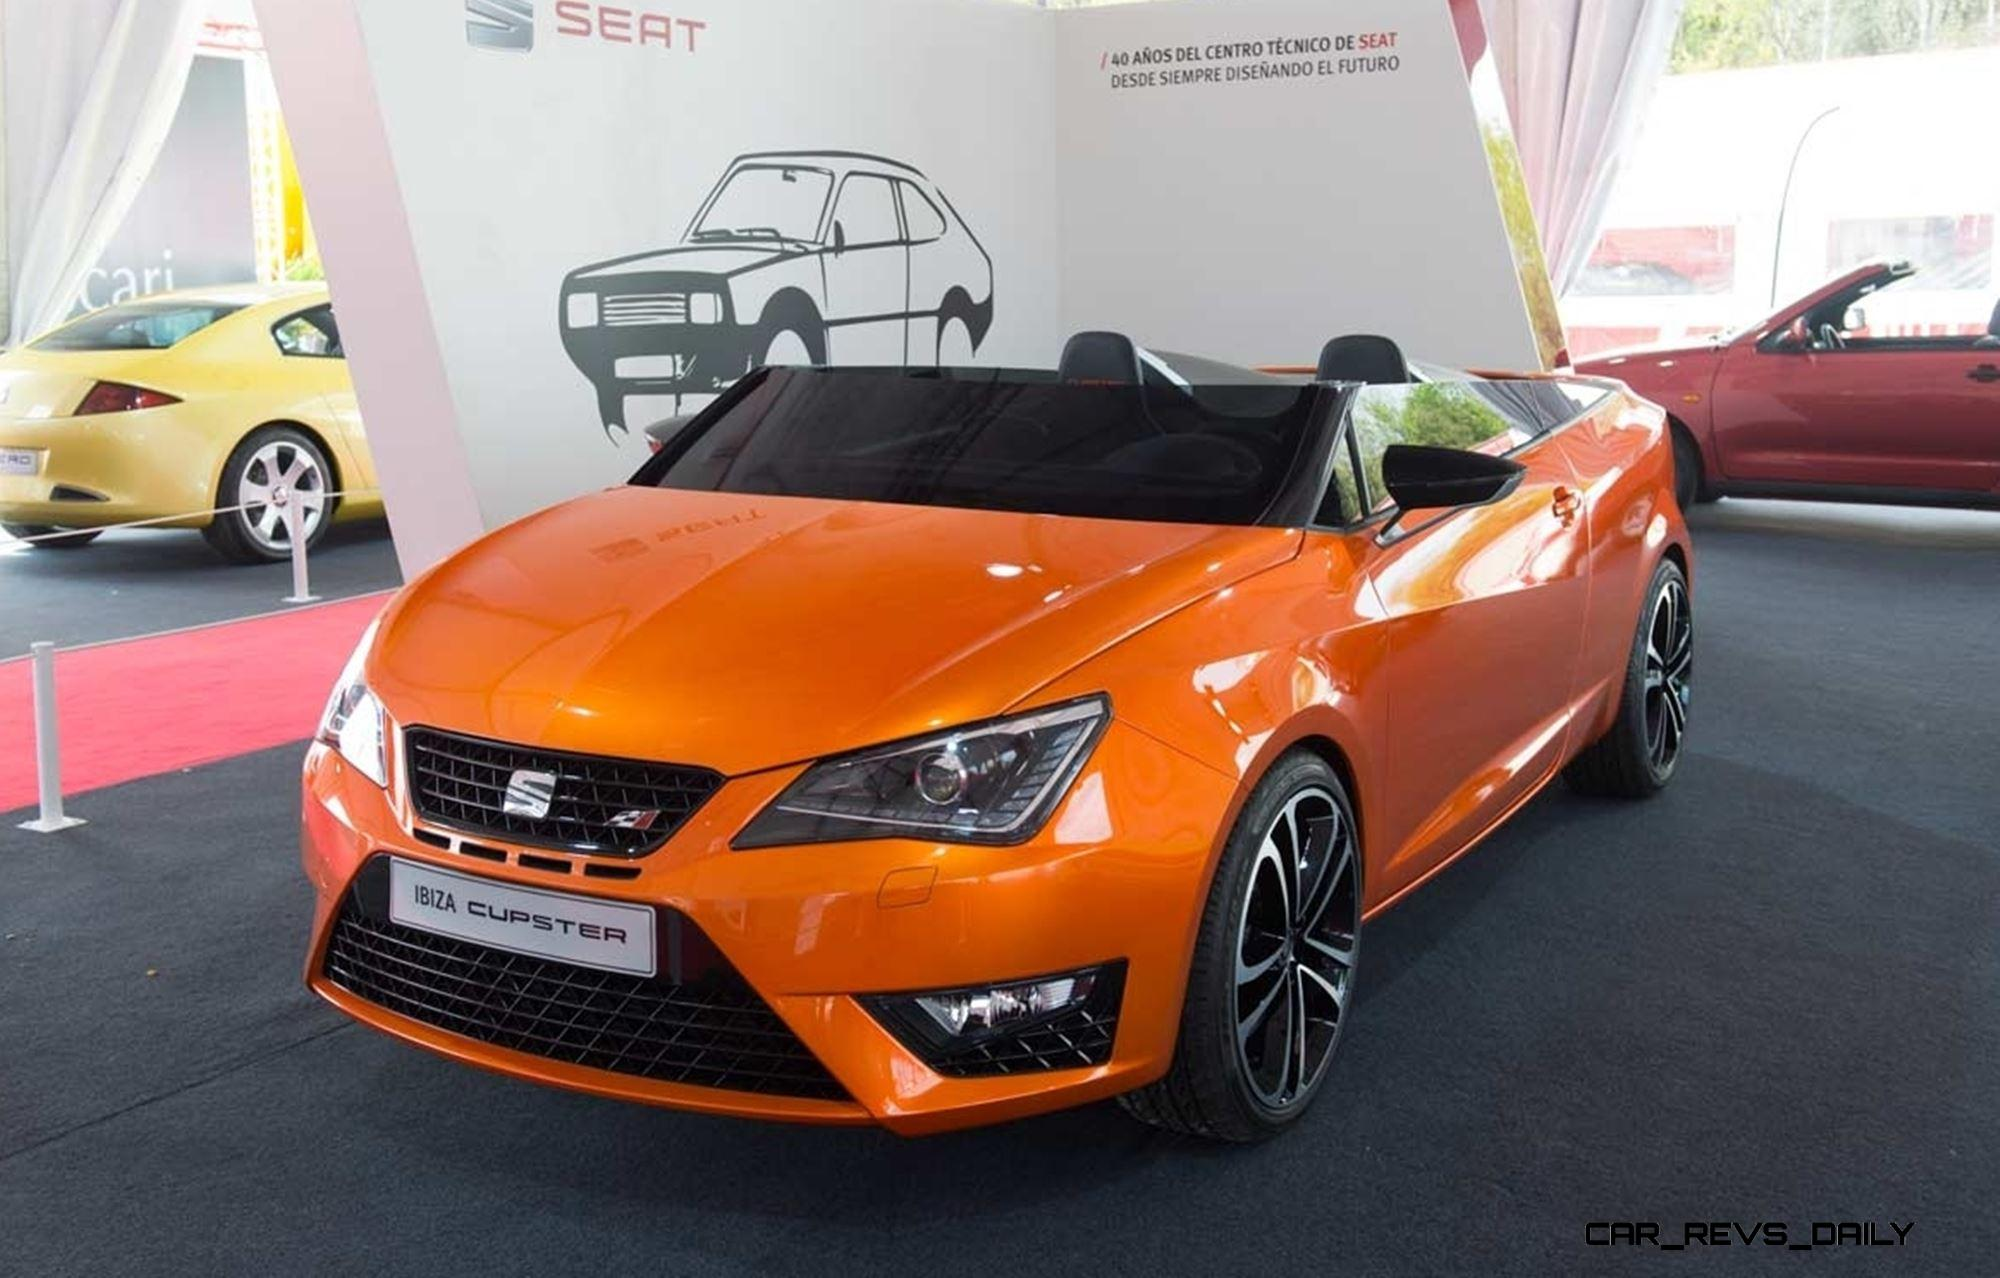 design analysis 2014 seat ibiza cupster. Black Bedroom Furniture Sets. Home Design Ideas